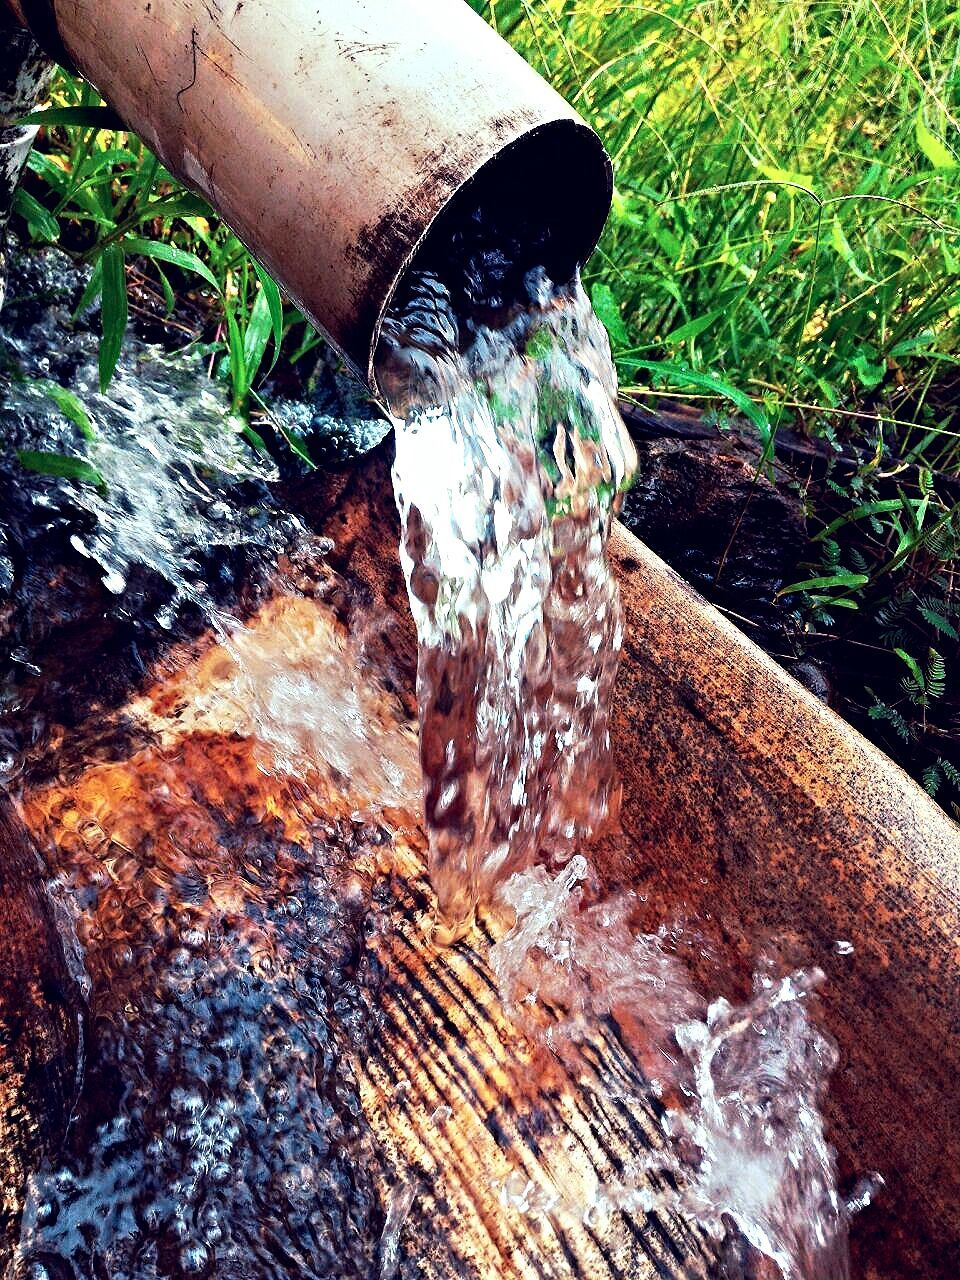 water, motion, flowing water, flowing, running water, splashing, drinking fountain, water pollution, fountain, sewage, drinking water, pipe - tube, long exposure, spraying, sewer, wet, dripping, water conservation, waterfront, rippled, waterfall, day, blurred motion, faucet, outdoors, water pipe, washing, tap, no people, oil spill, nature, splashing droplet, close-up